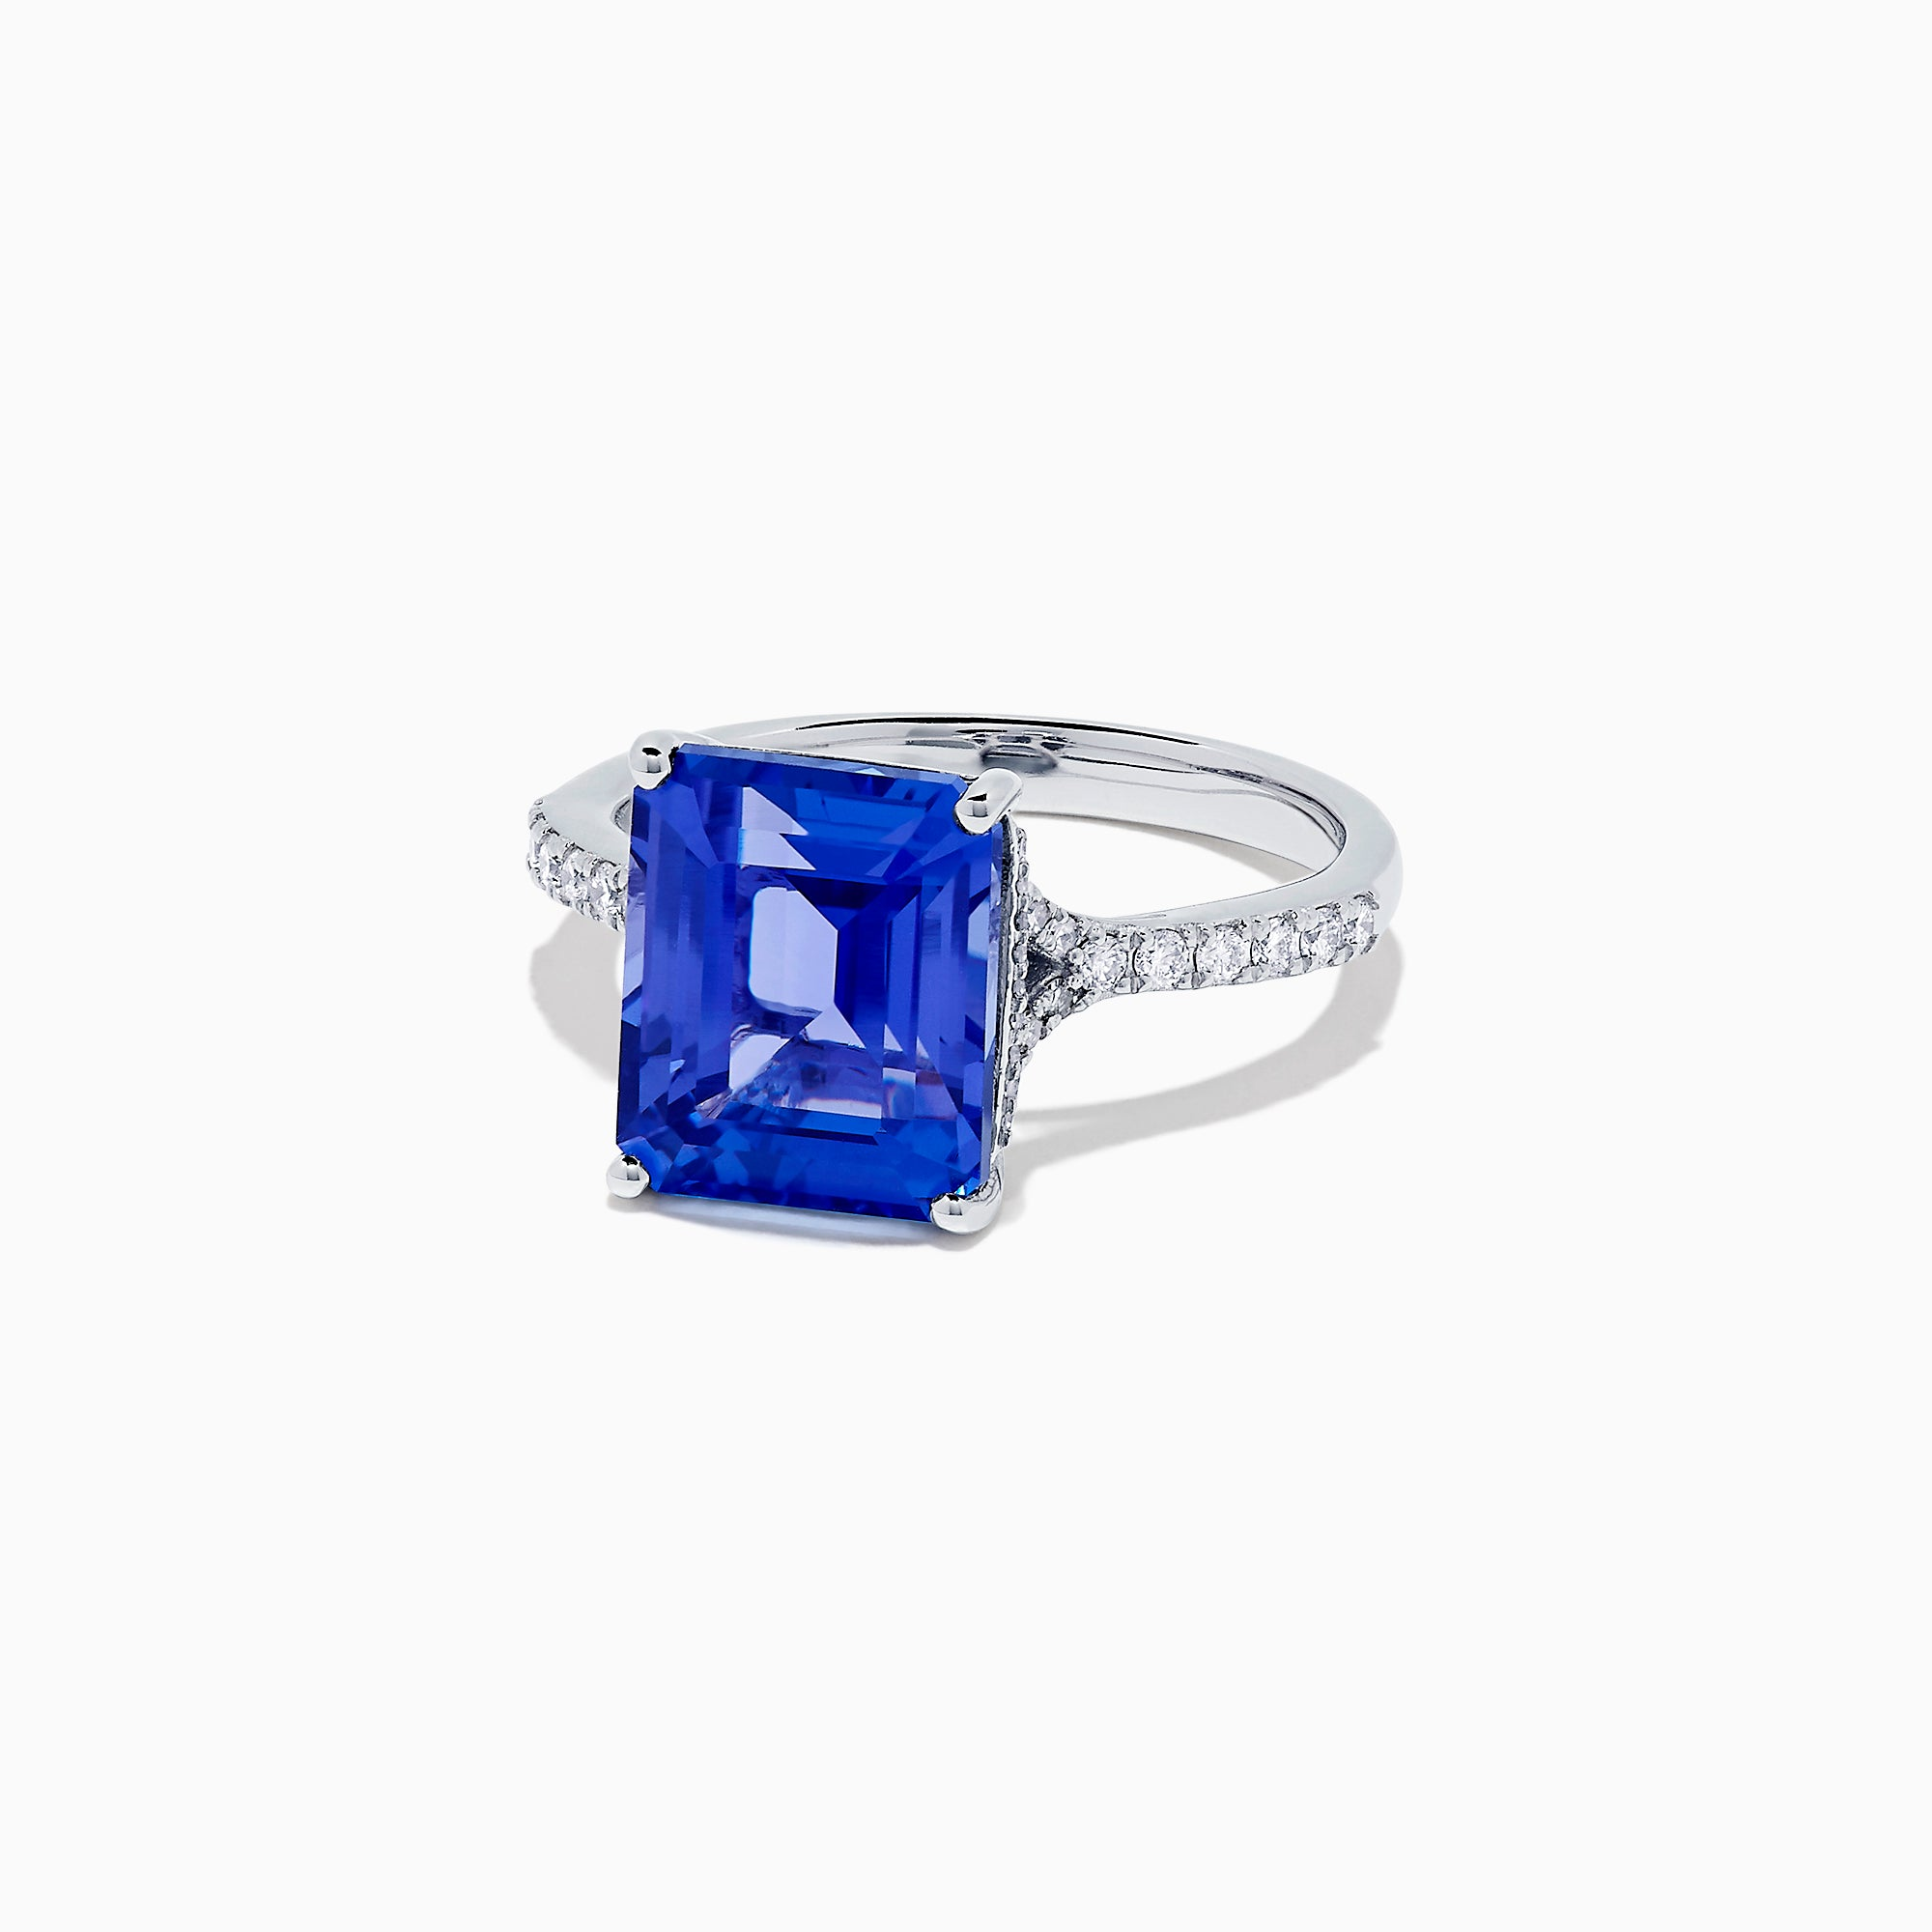 Effy Tanzanite Royale 14K White Gold Tanzanite and Diamond Ring, 4.97 TCW